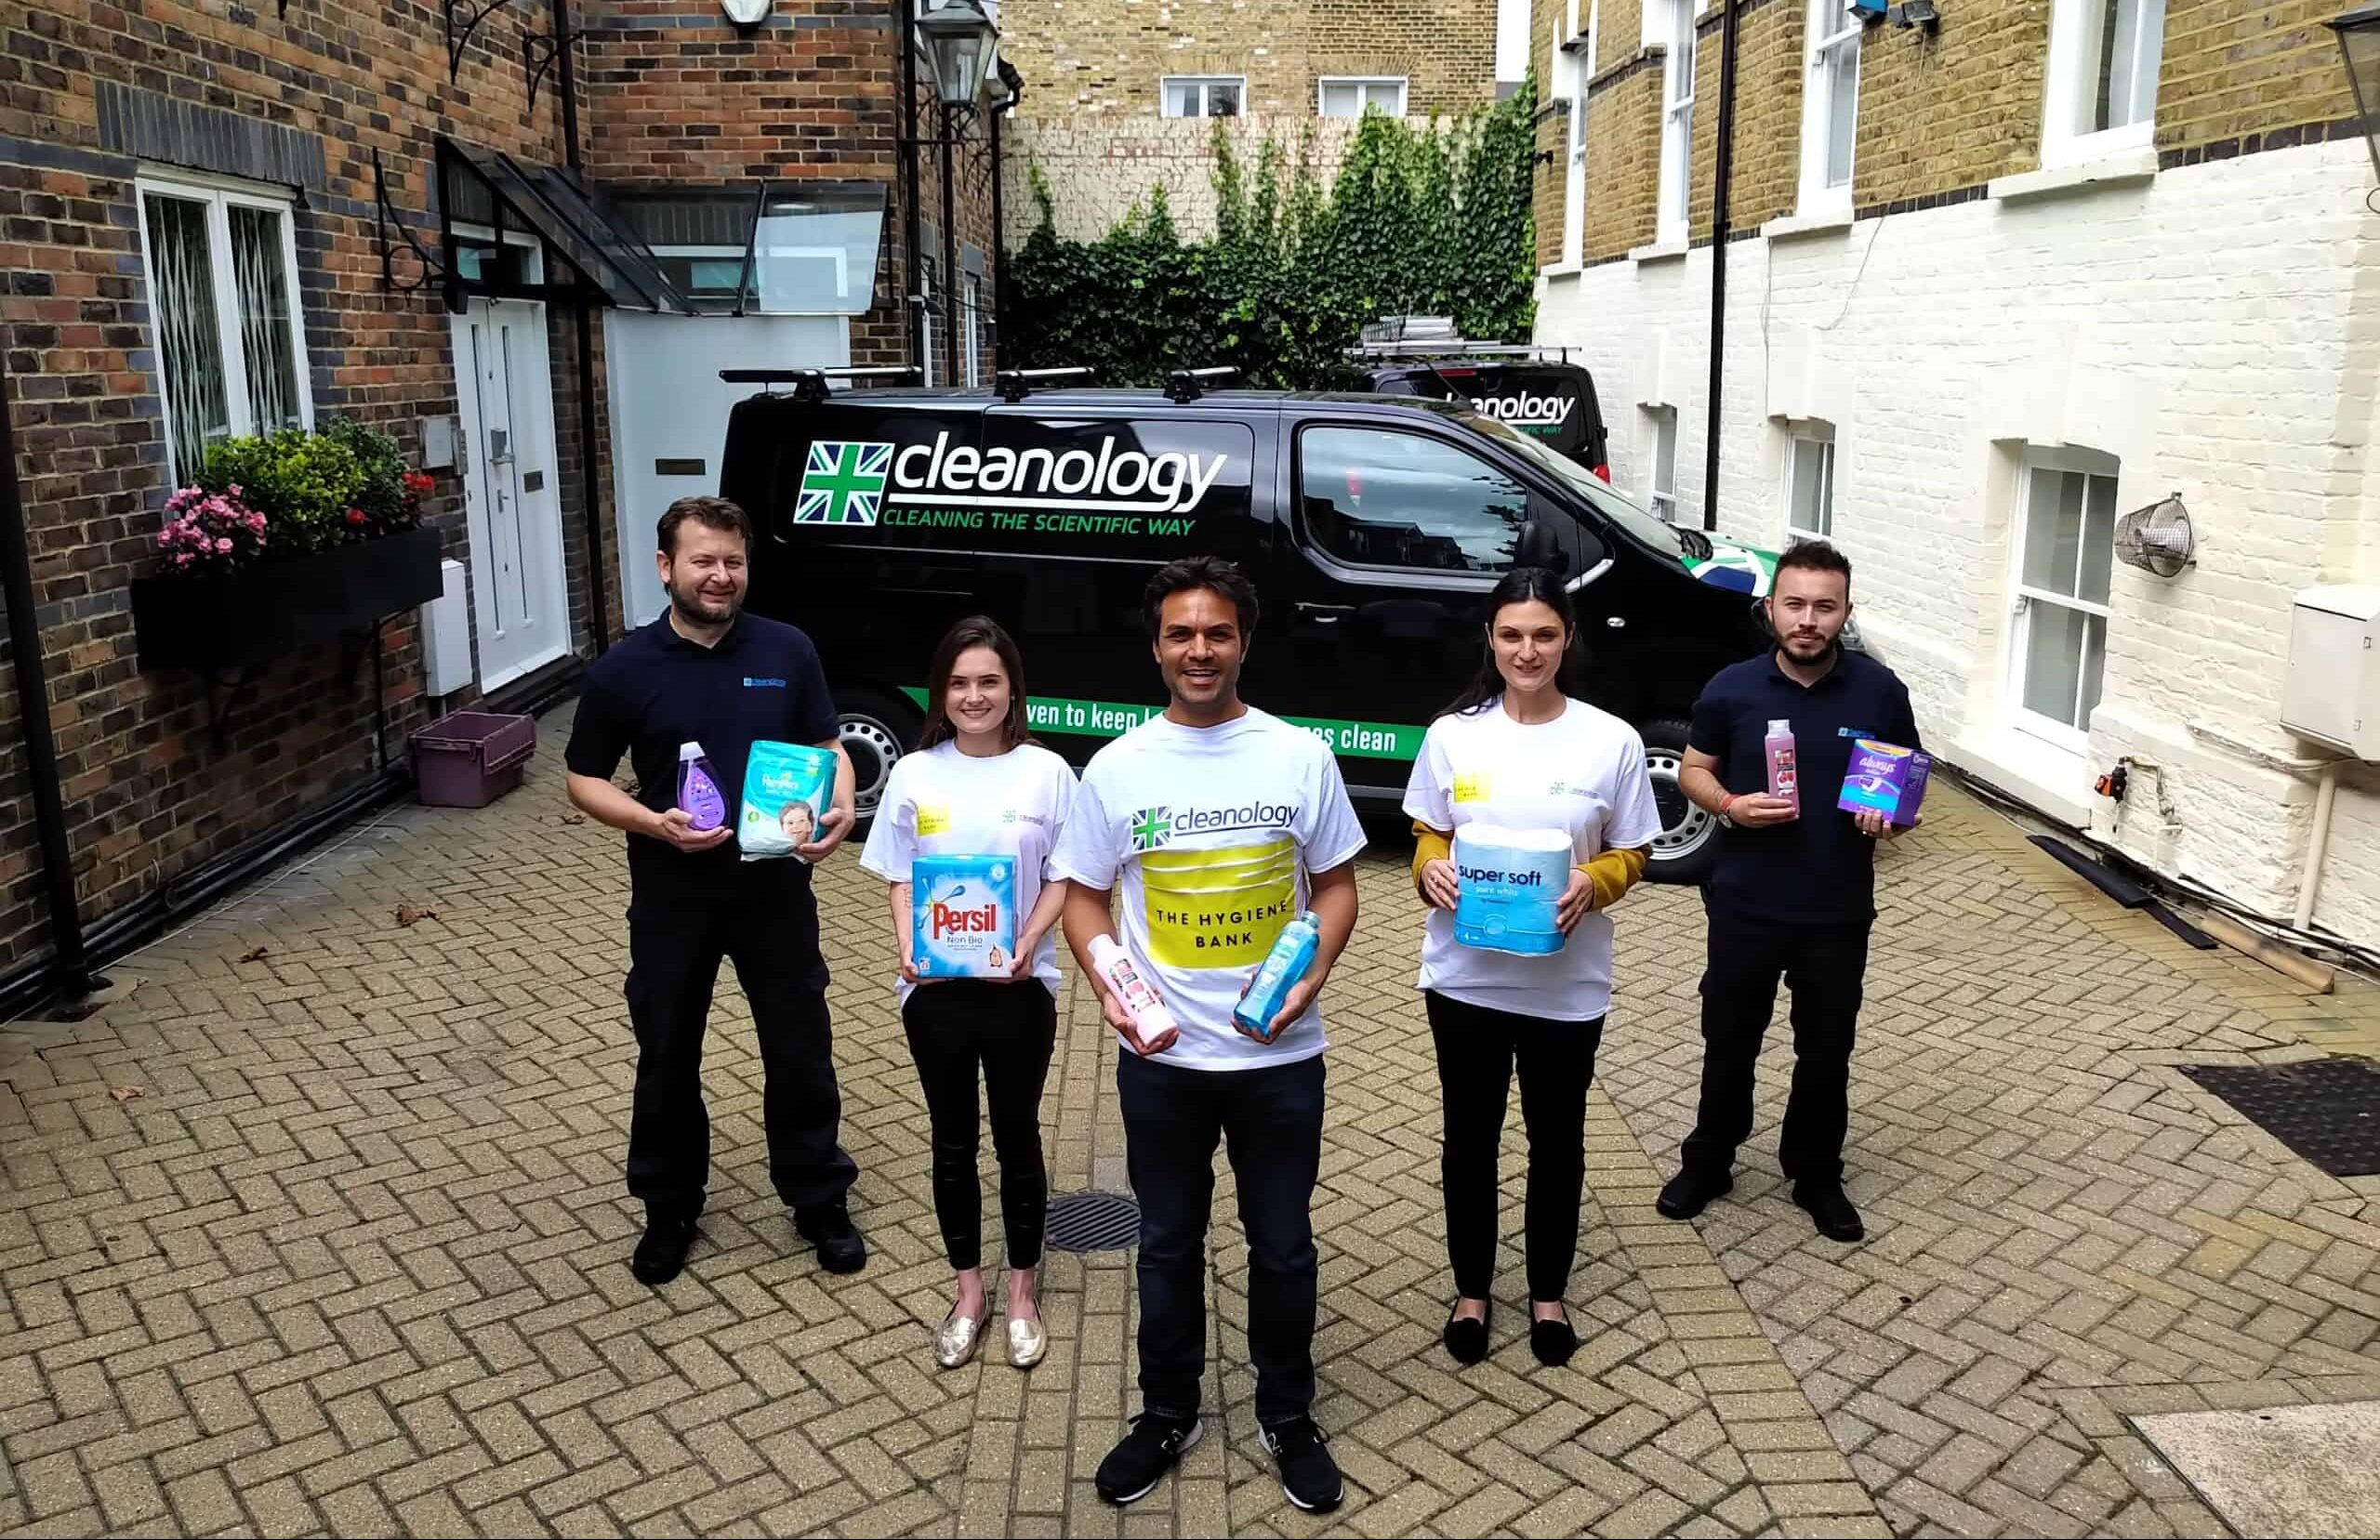 Cleanology works with The Hygiene Bank to help alleviate hygiene poverty at Christmas